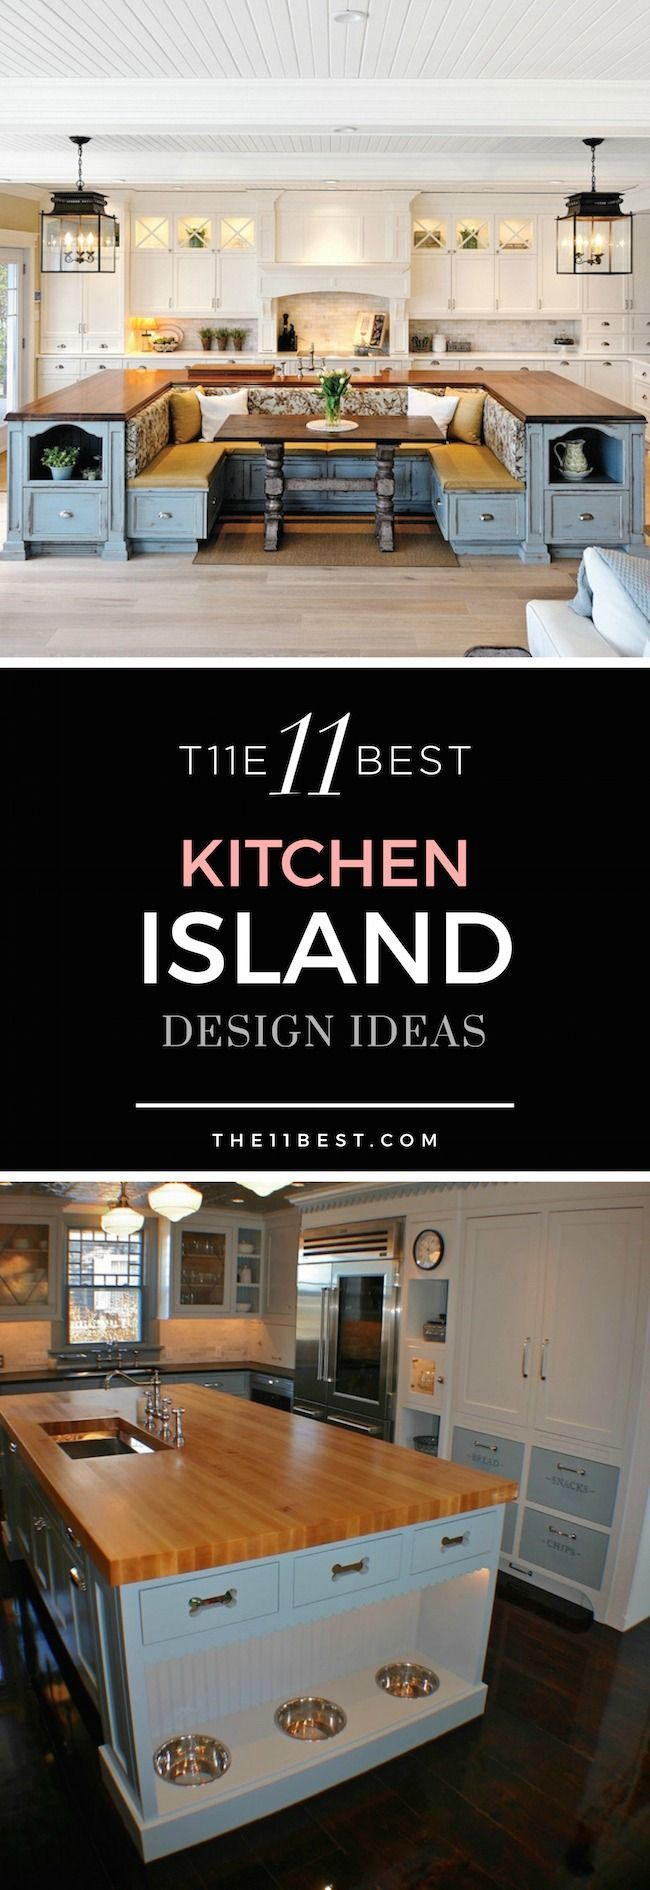 best 25 kitchen islands ideas on pinterest island design the 11 best kitchen island design ideas for your home